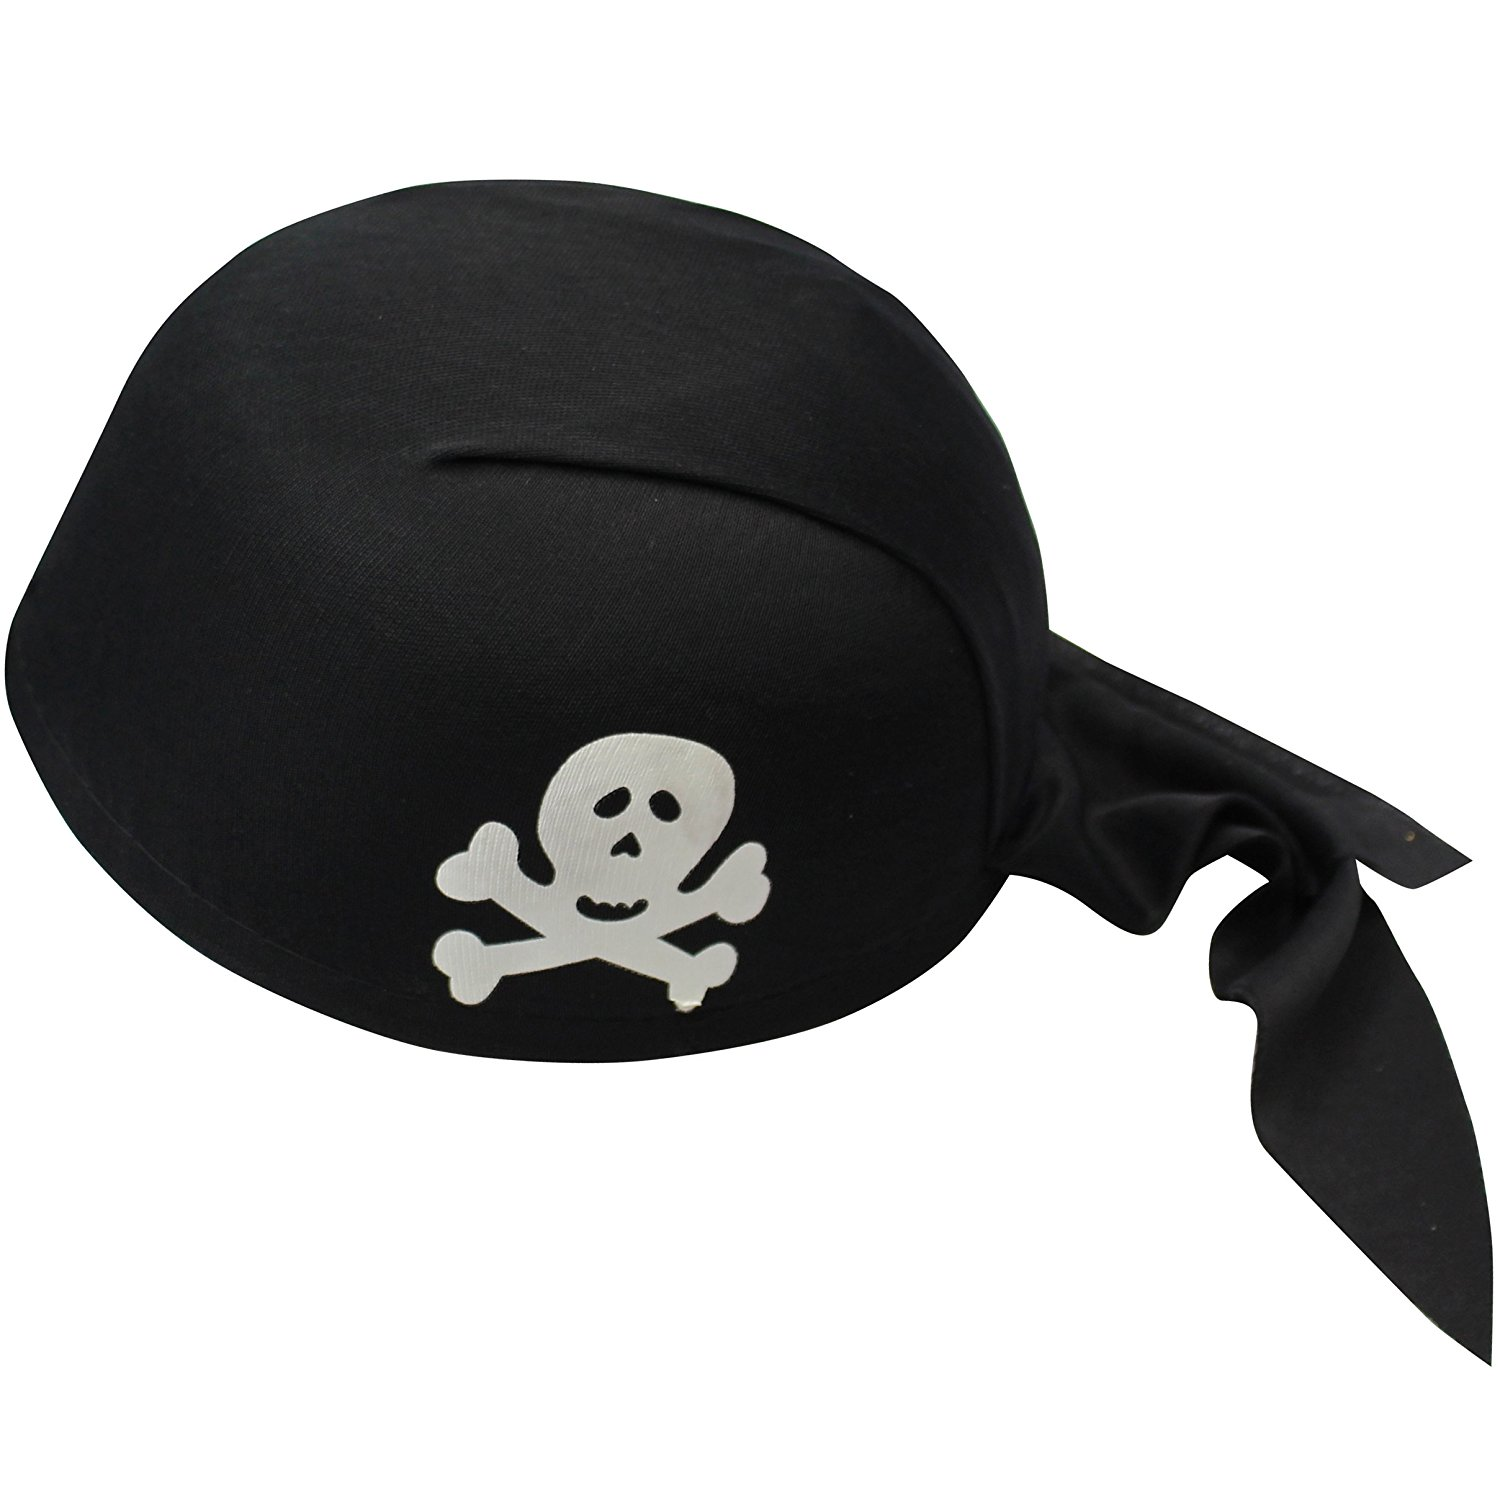 buy pirate scarf hat black pirate scarf costume hat for adults